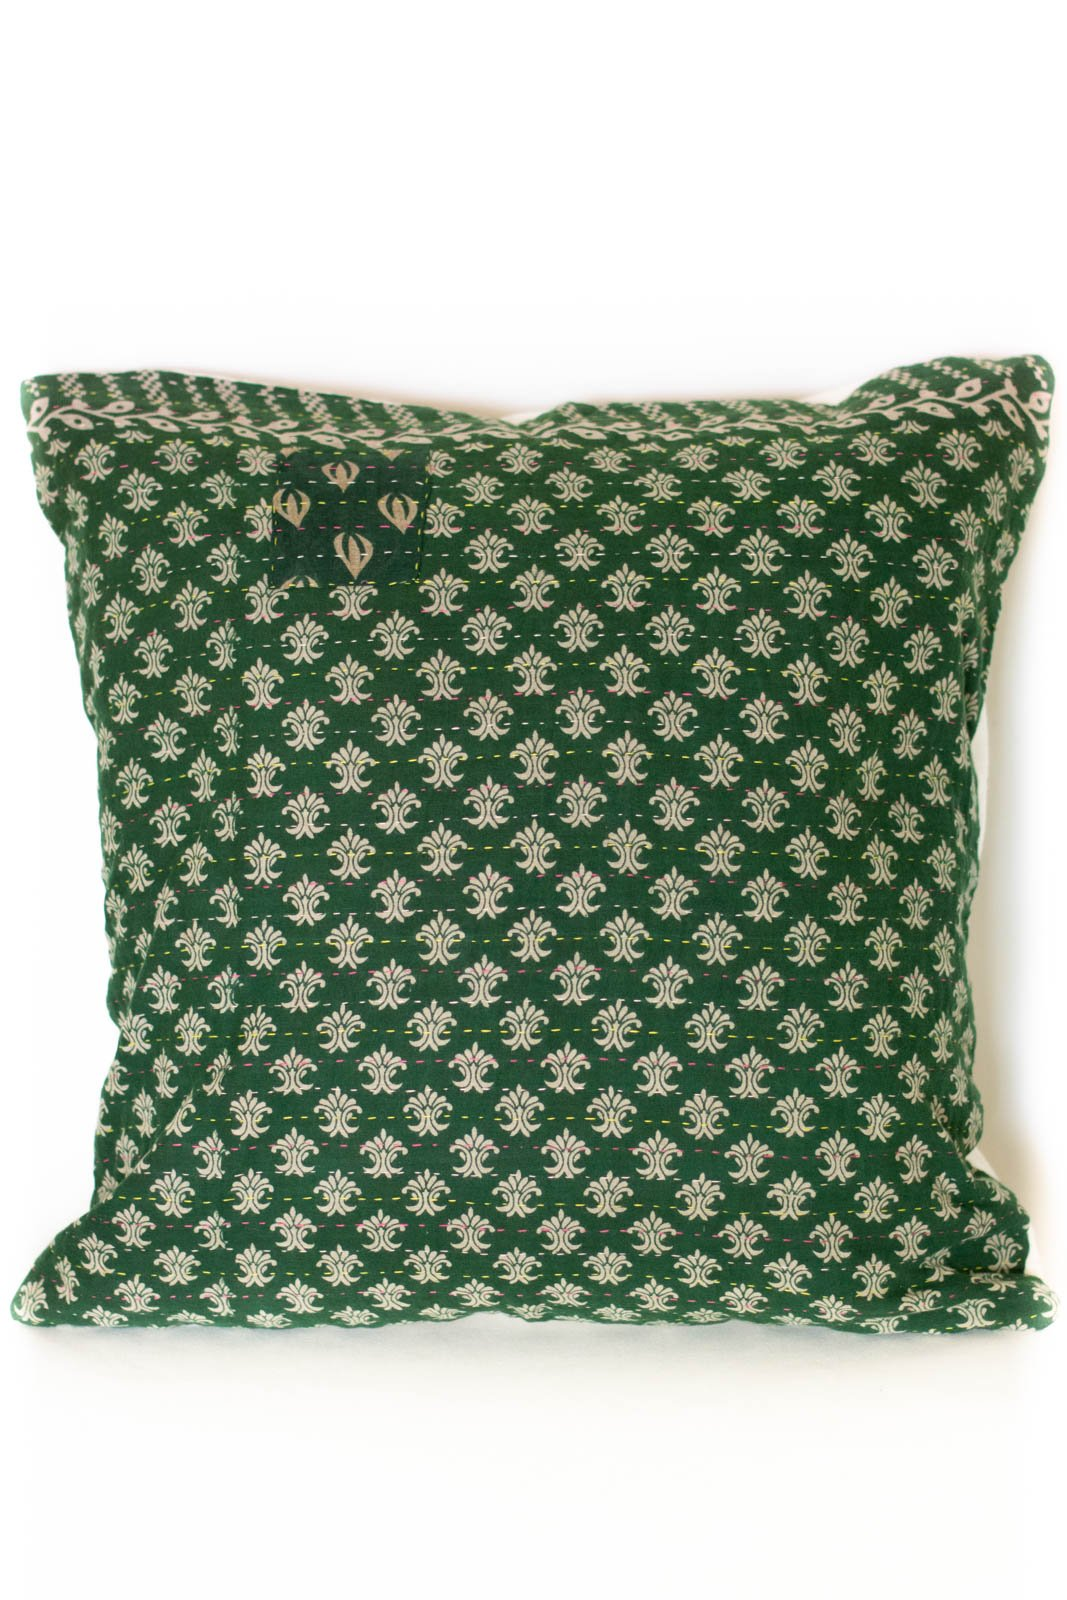 Beauty no. 2 Kantha Pillow Cover